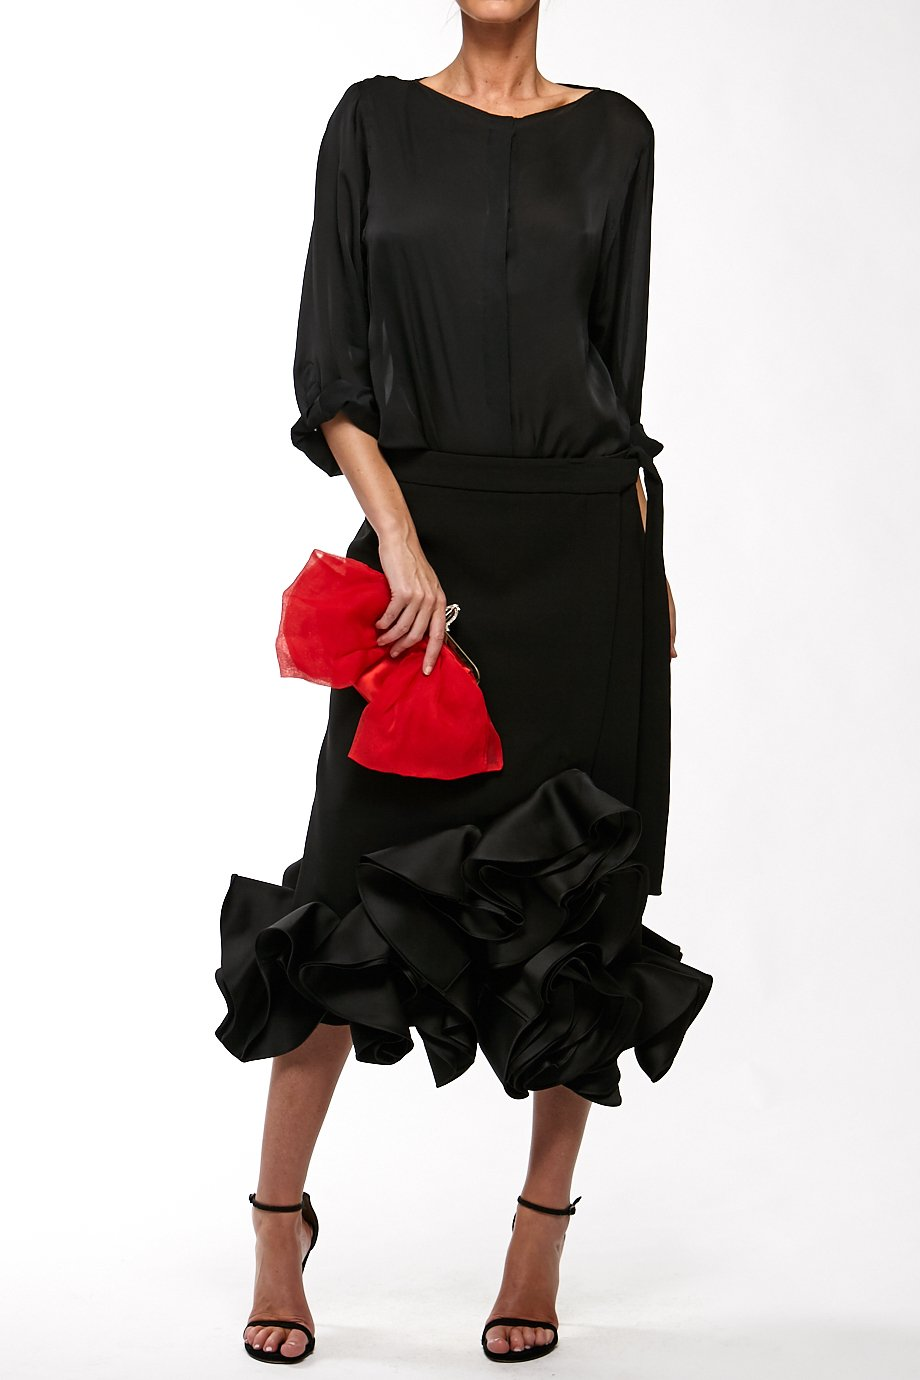 Victoria Beckham Black Ruffled Long Sleeves Mermaid Skirt Dress